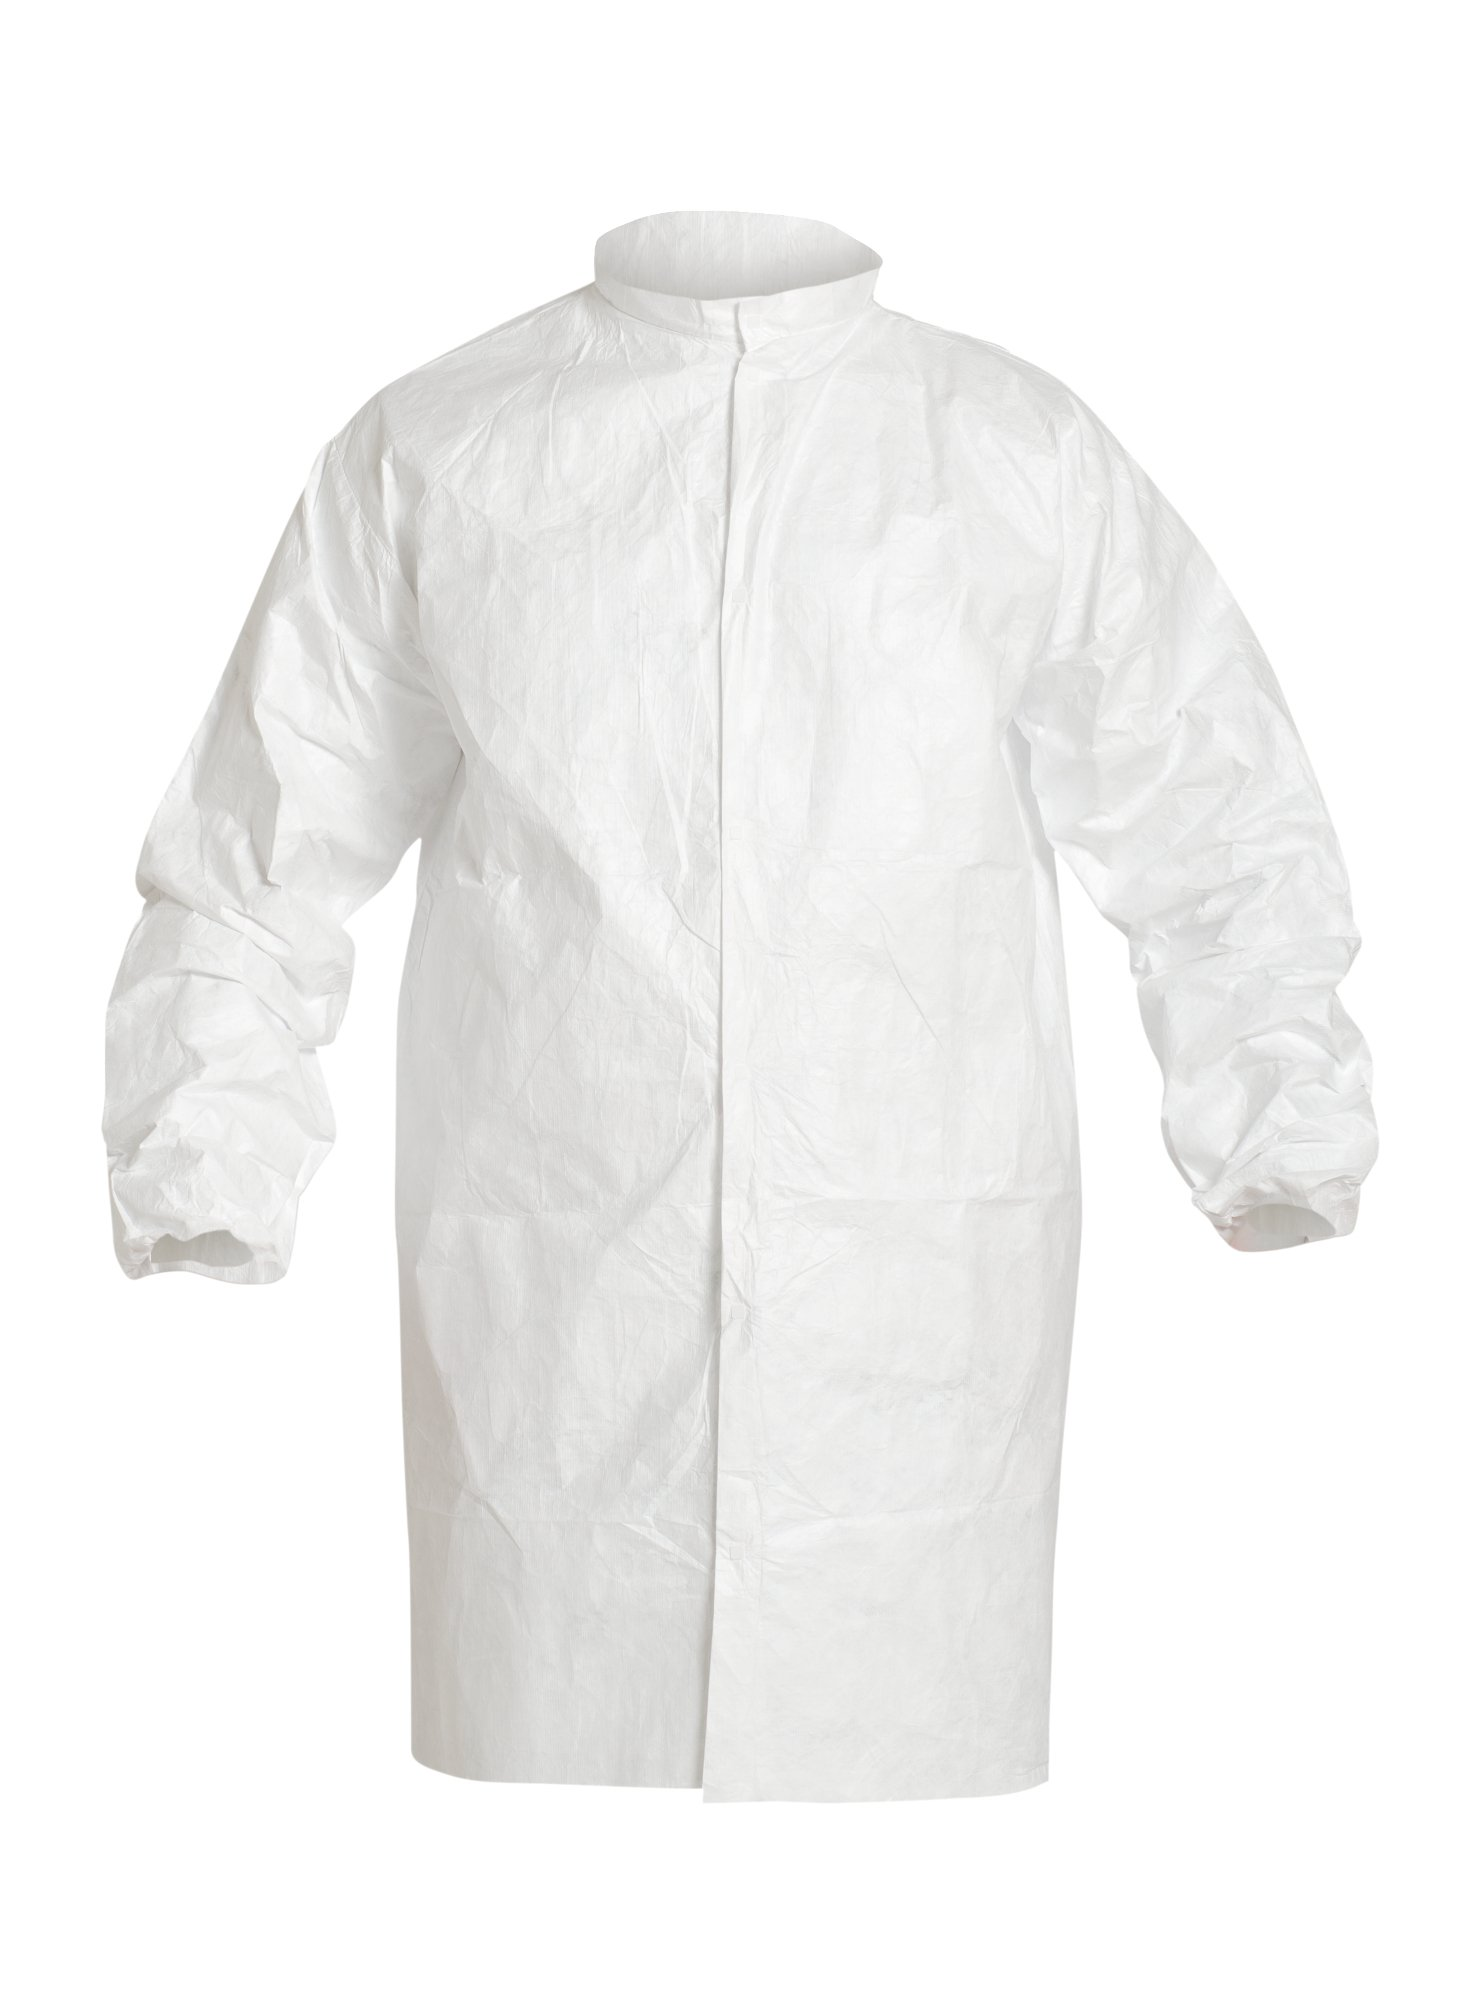 DuPont Tyvek IsoClean IC263S Snap Front Frock, White, 2X-Large (Pack of 30)